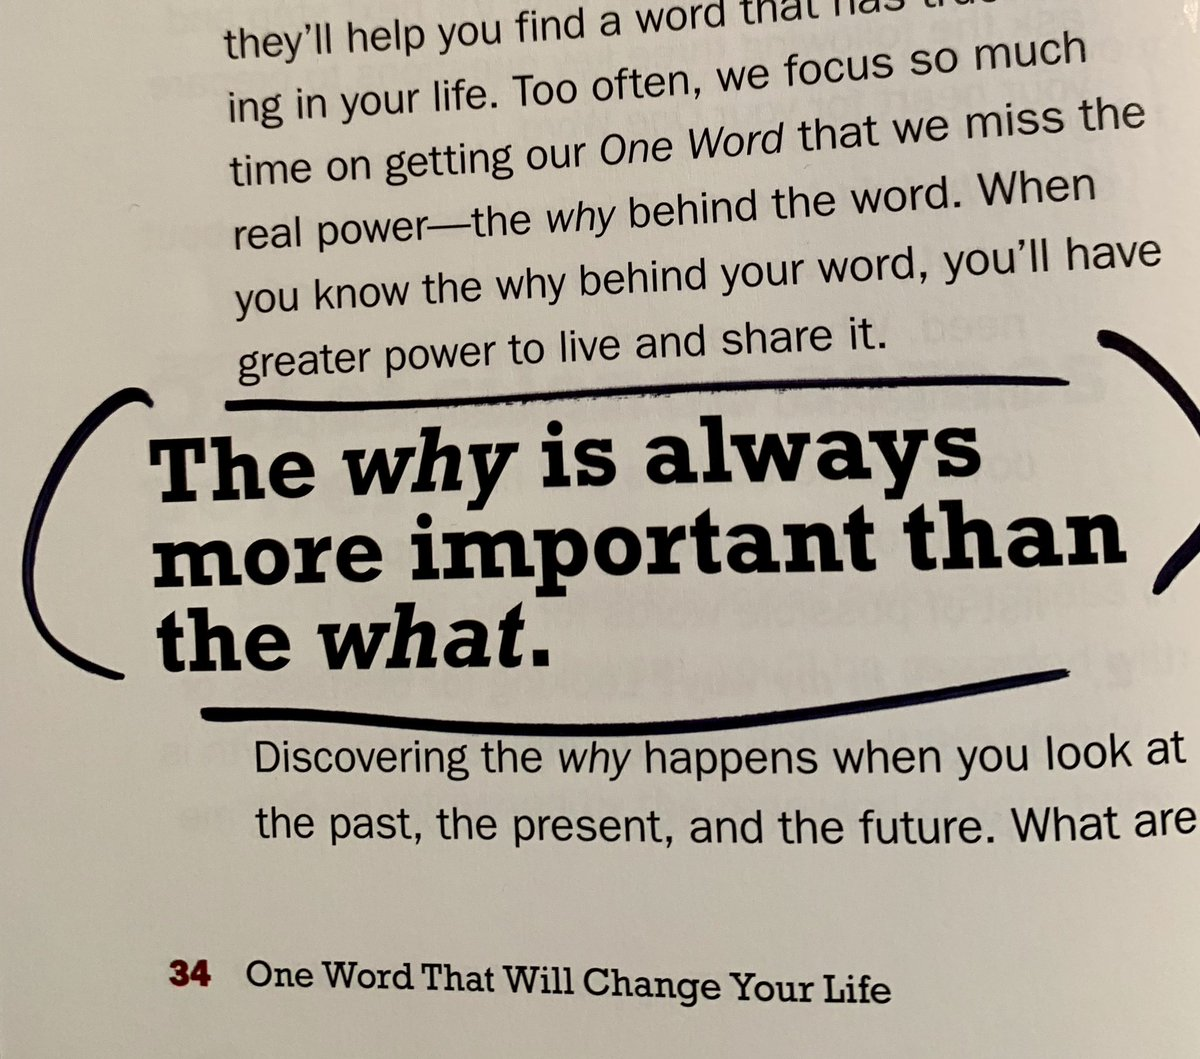 When you know your why behind your word, you'll have greater power to live and share it.